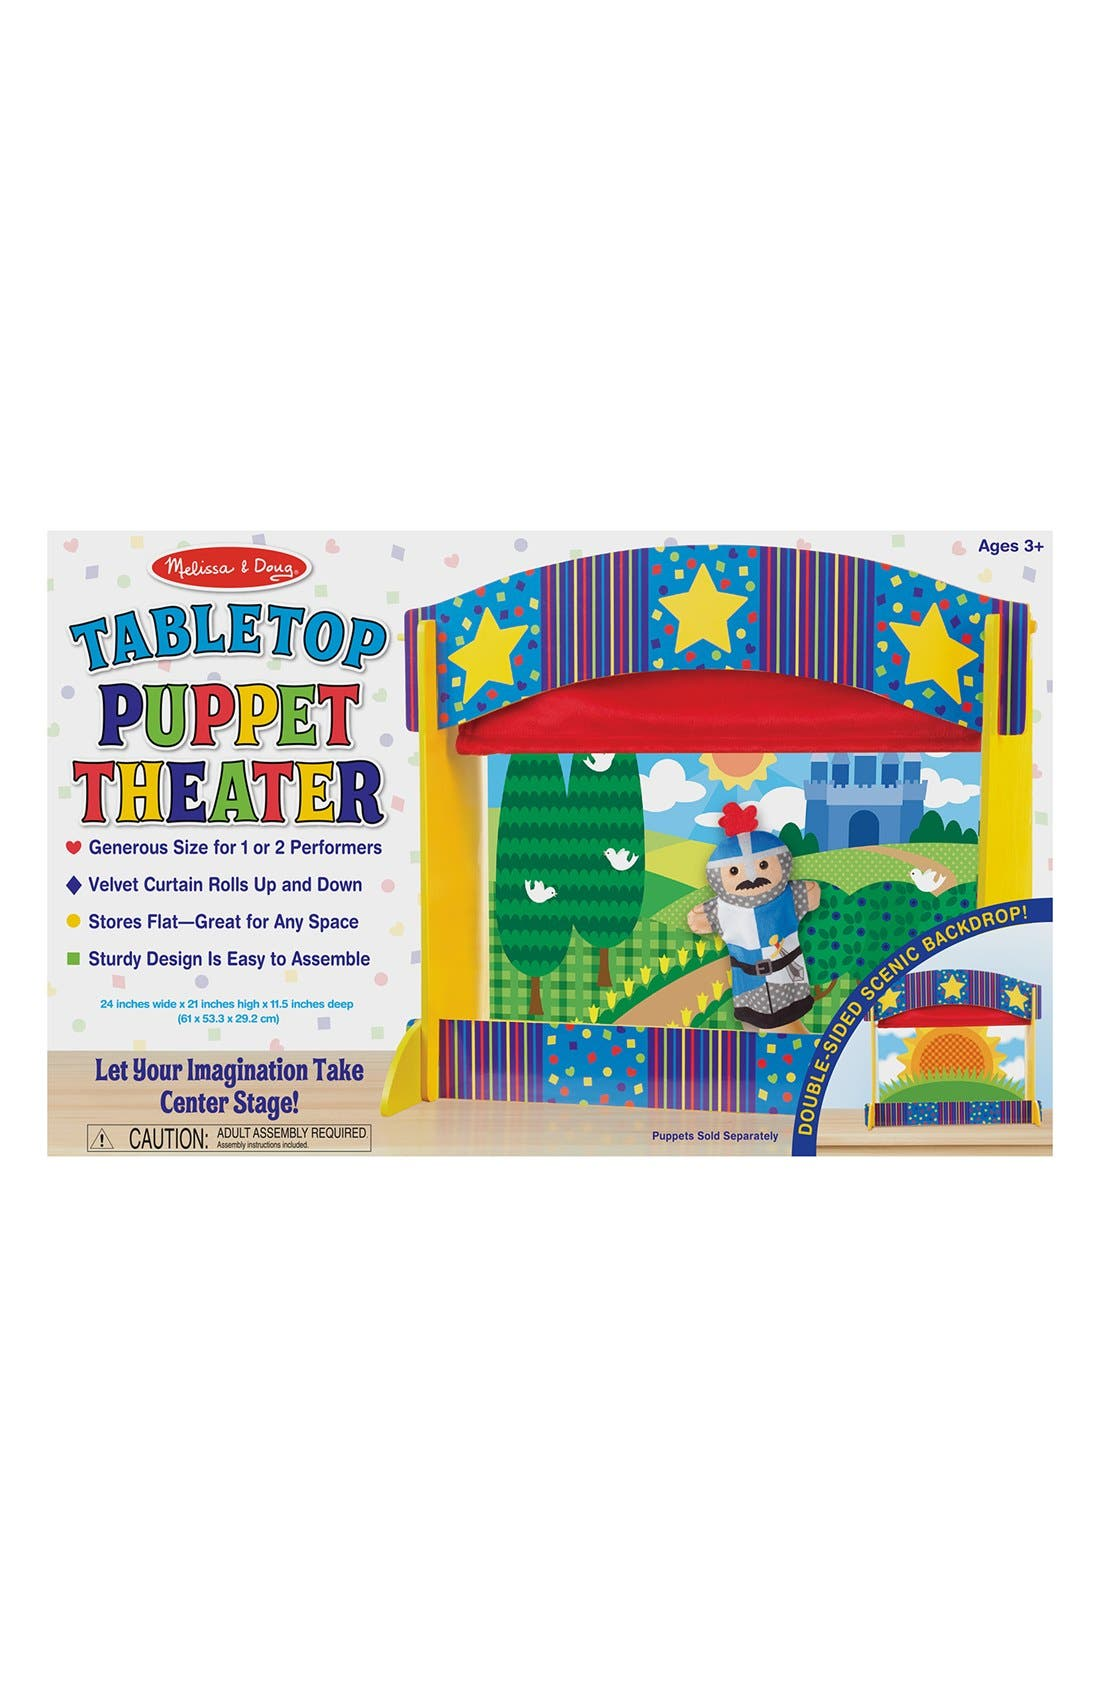 Alternate Image 1 Selected - Melissa & Doug Tabletop Puppet Theater